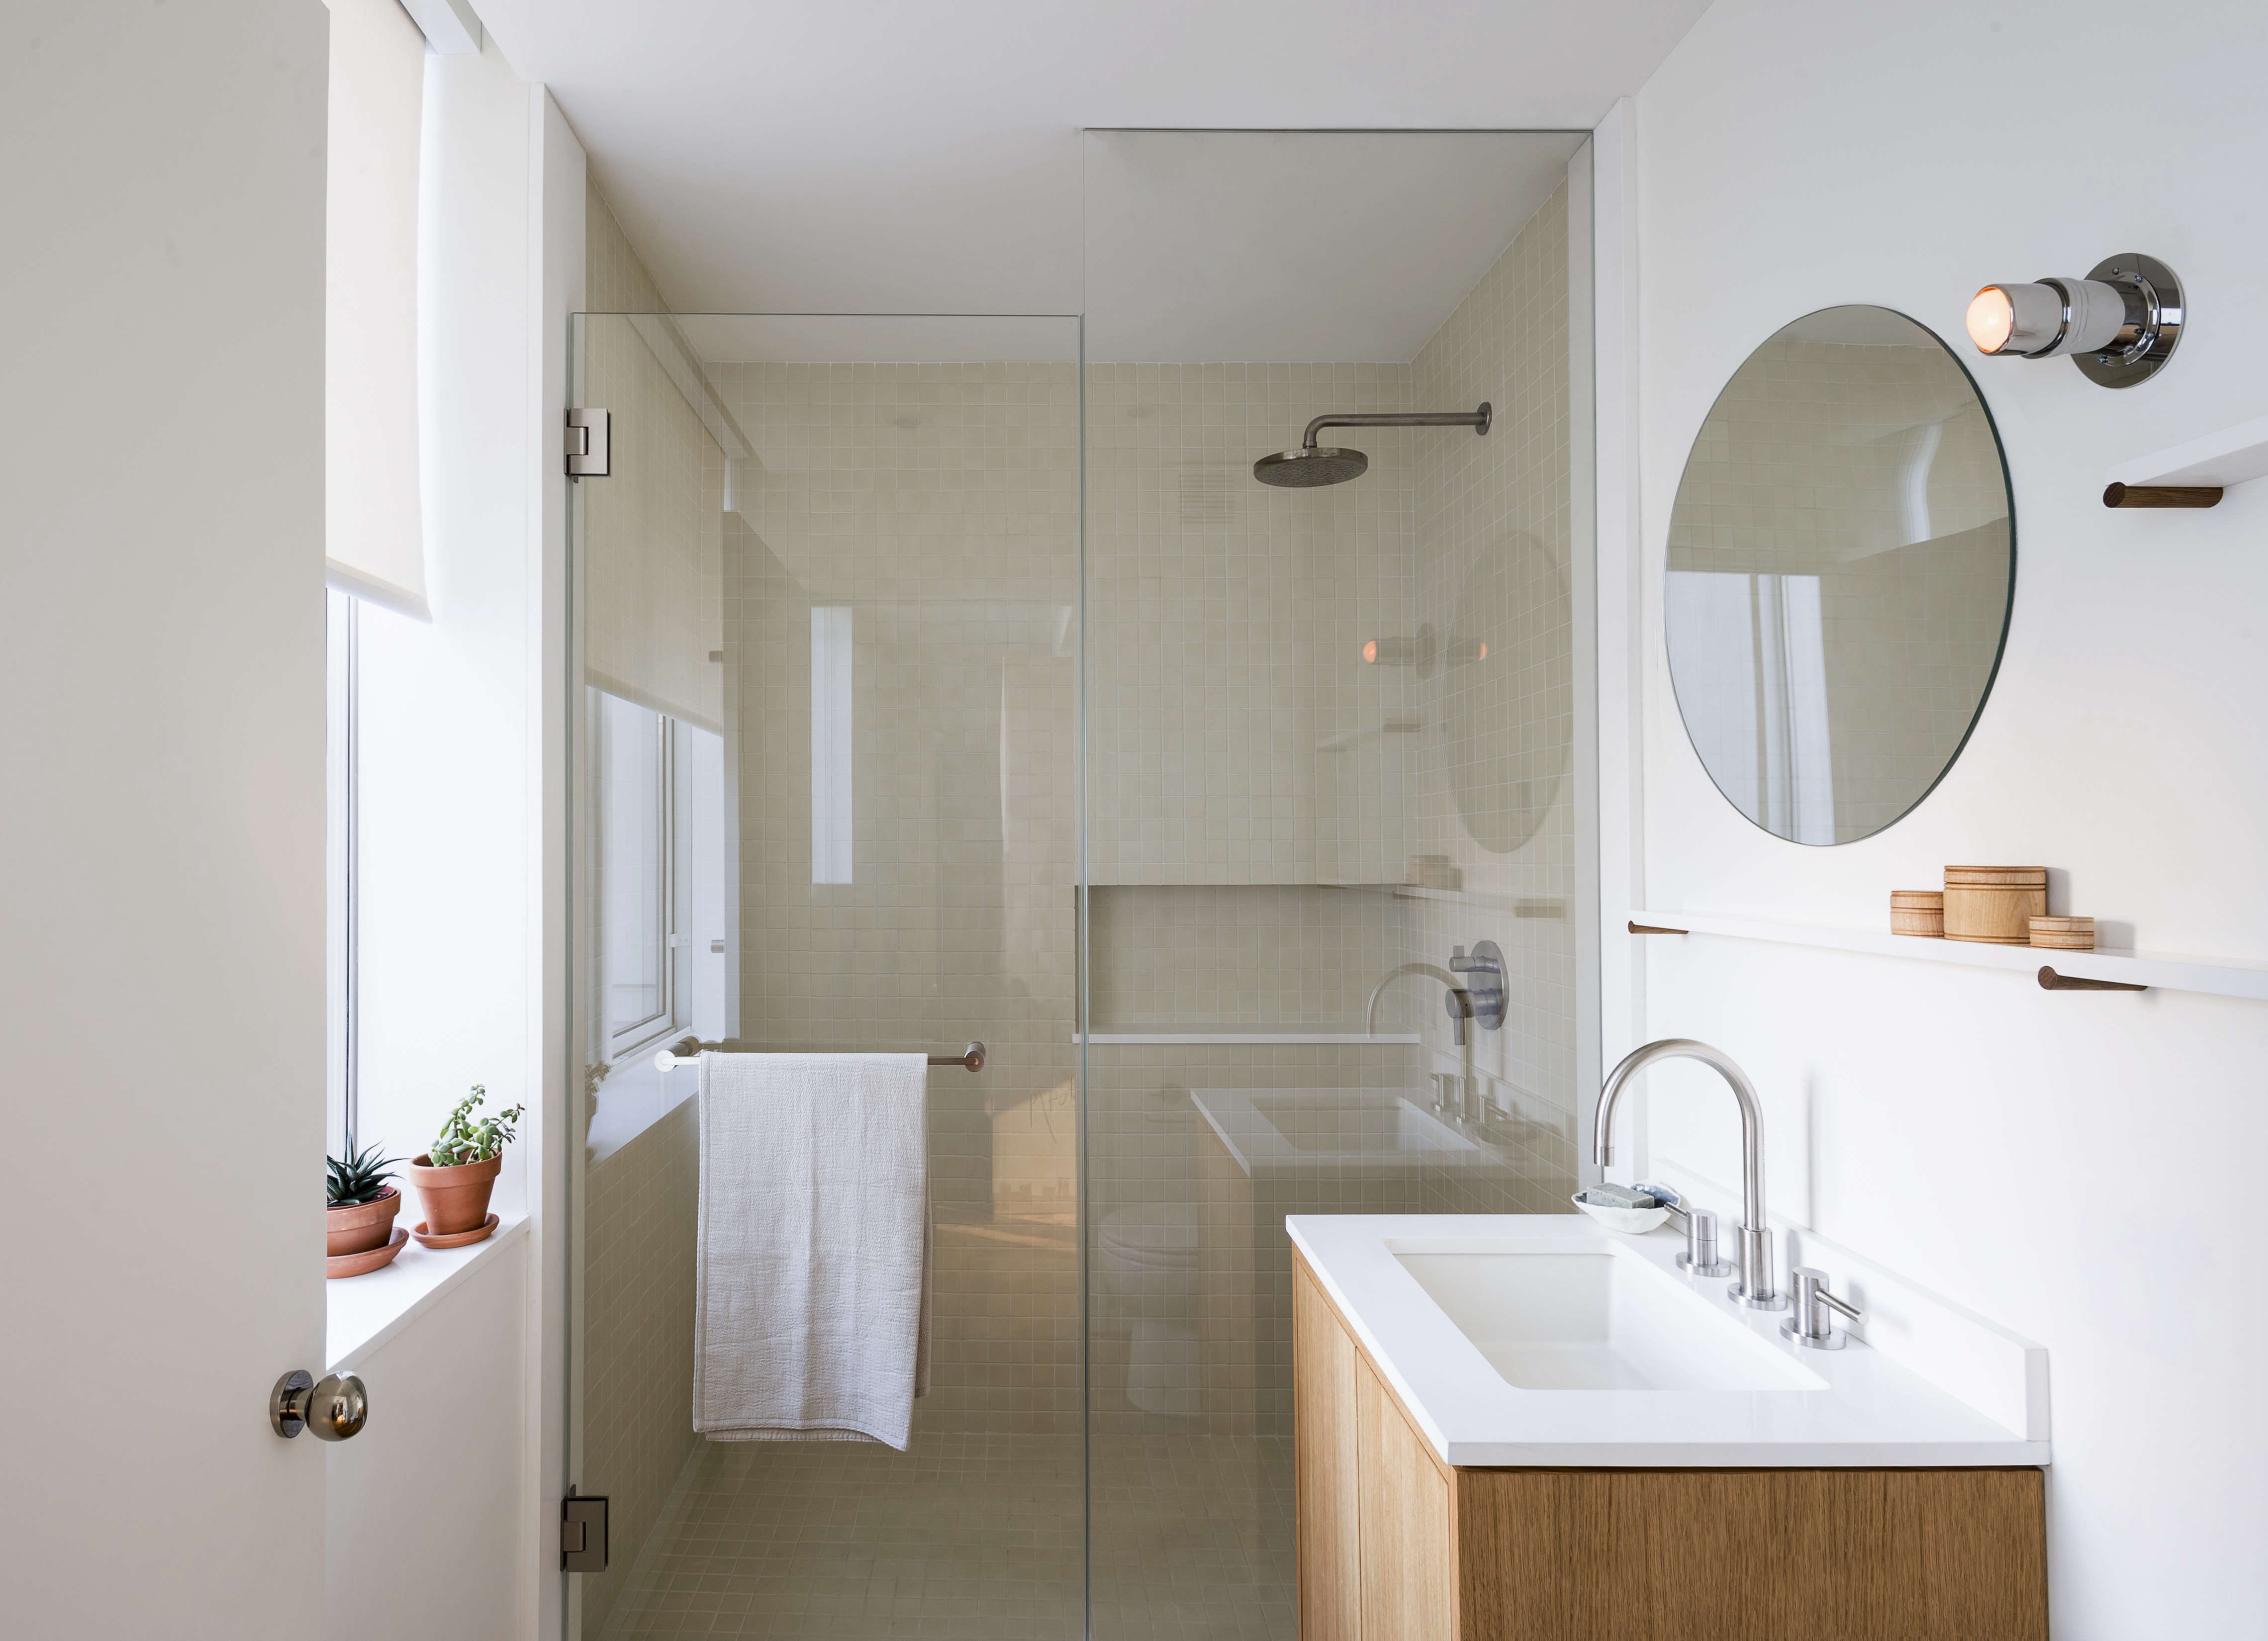 the artful shoebox apartment, workstead edition - remodelista